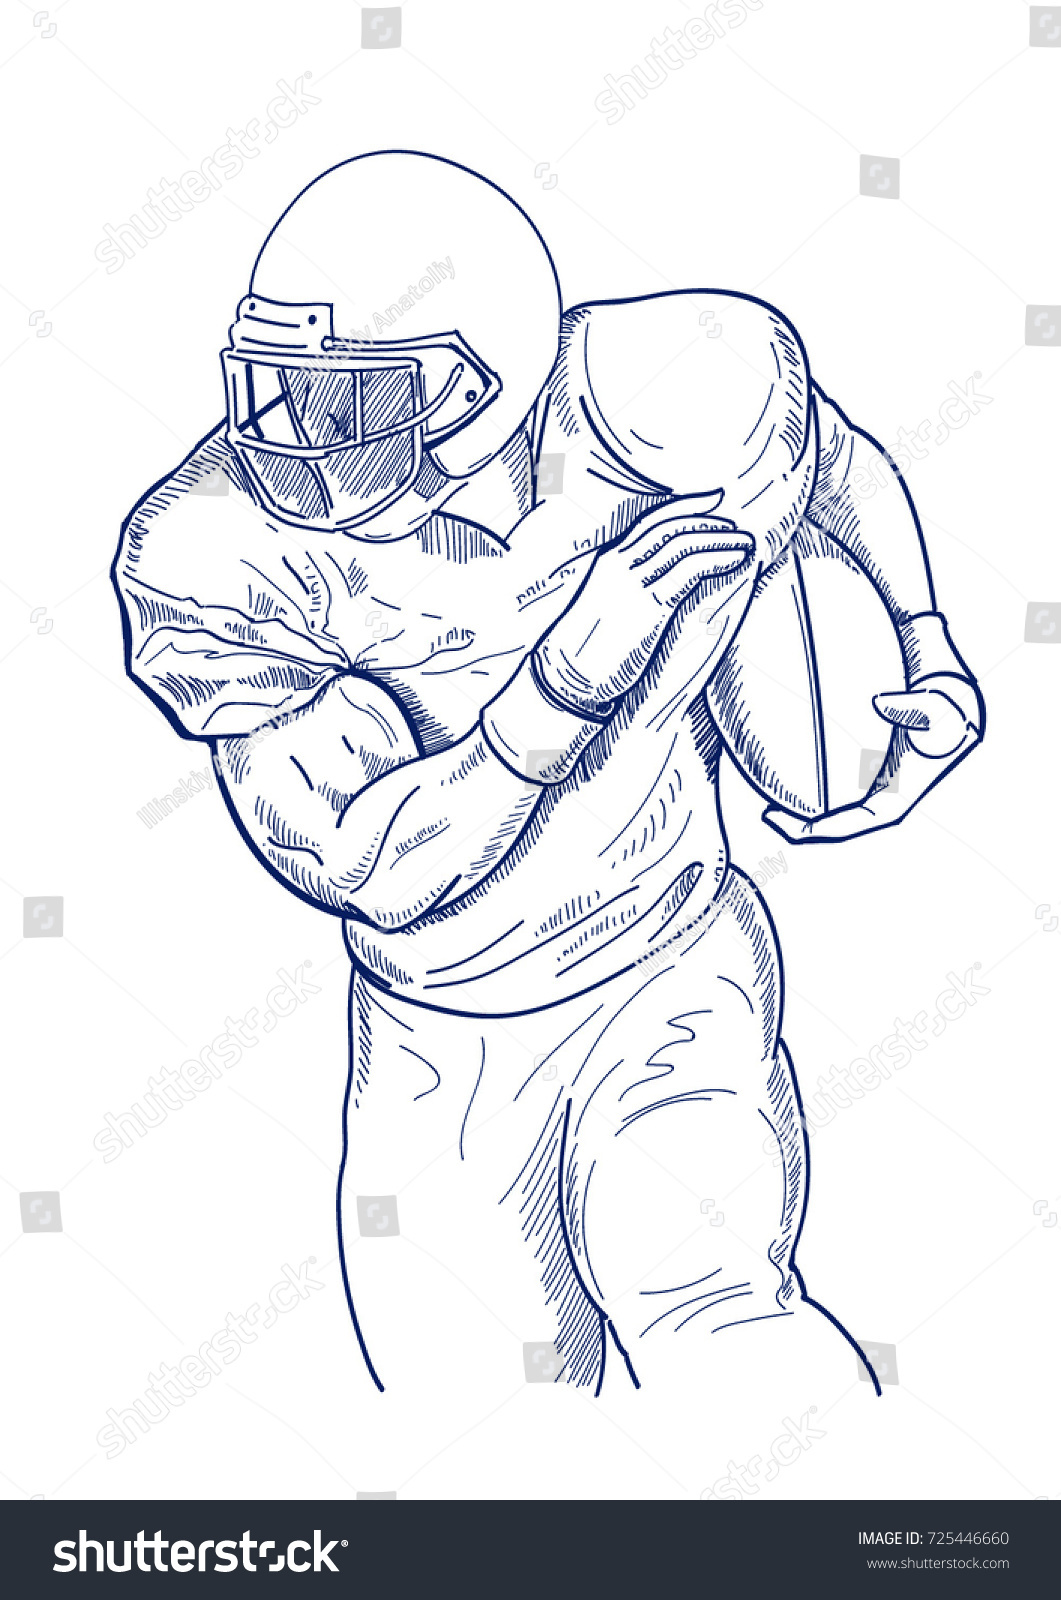 1061x1600 Collection Of Football Player Drawing Images High Quality